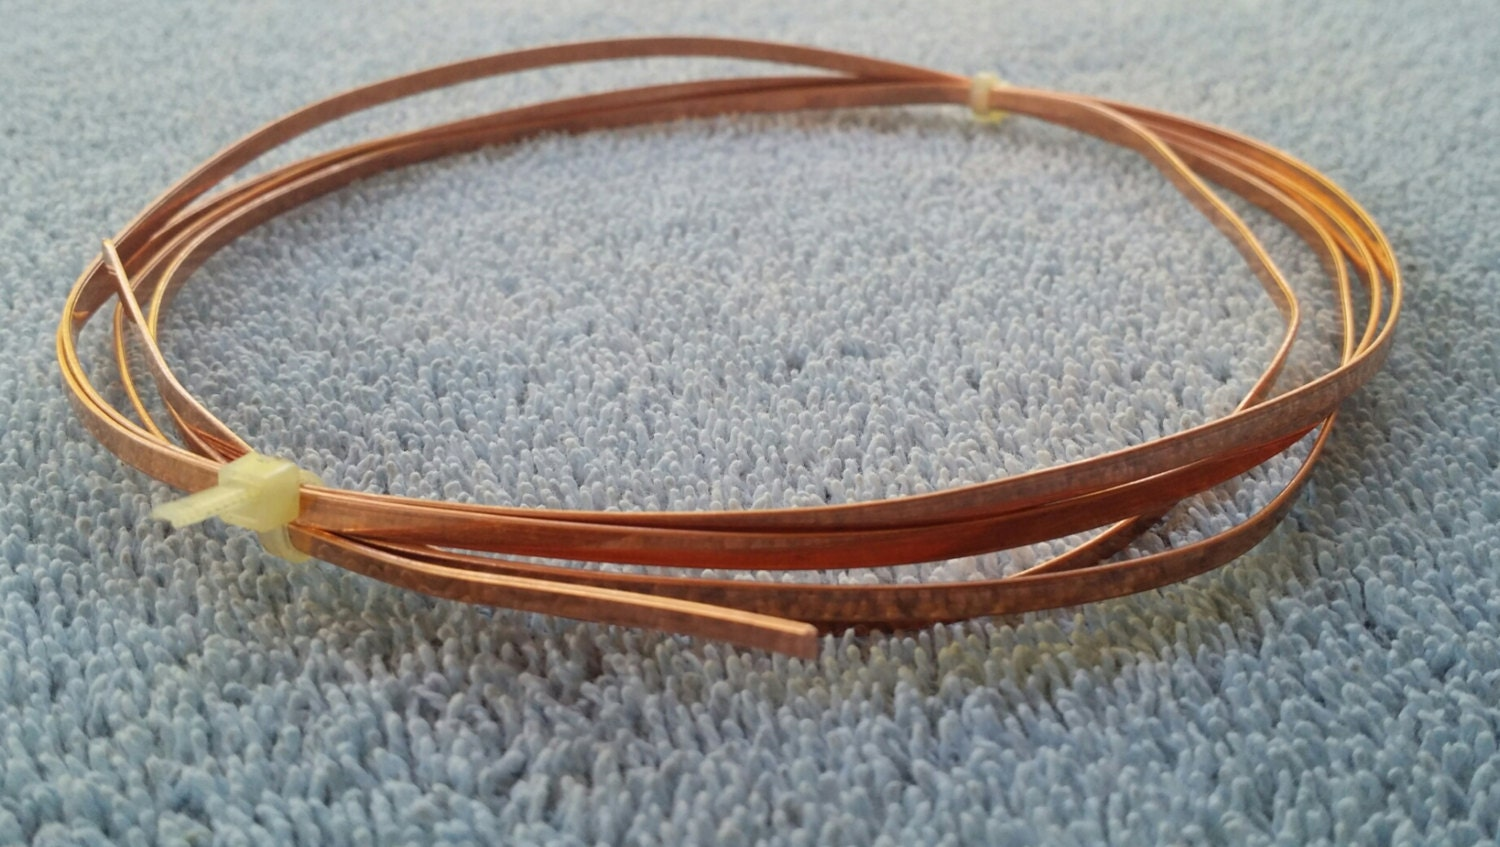 Flat Copper Wire 3mm X 0.75mm Five Feet Long from RodsRingsAndThings ...